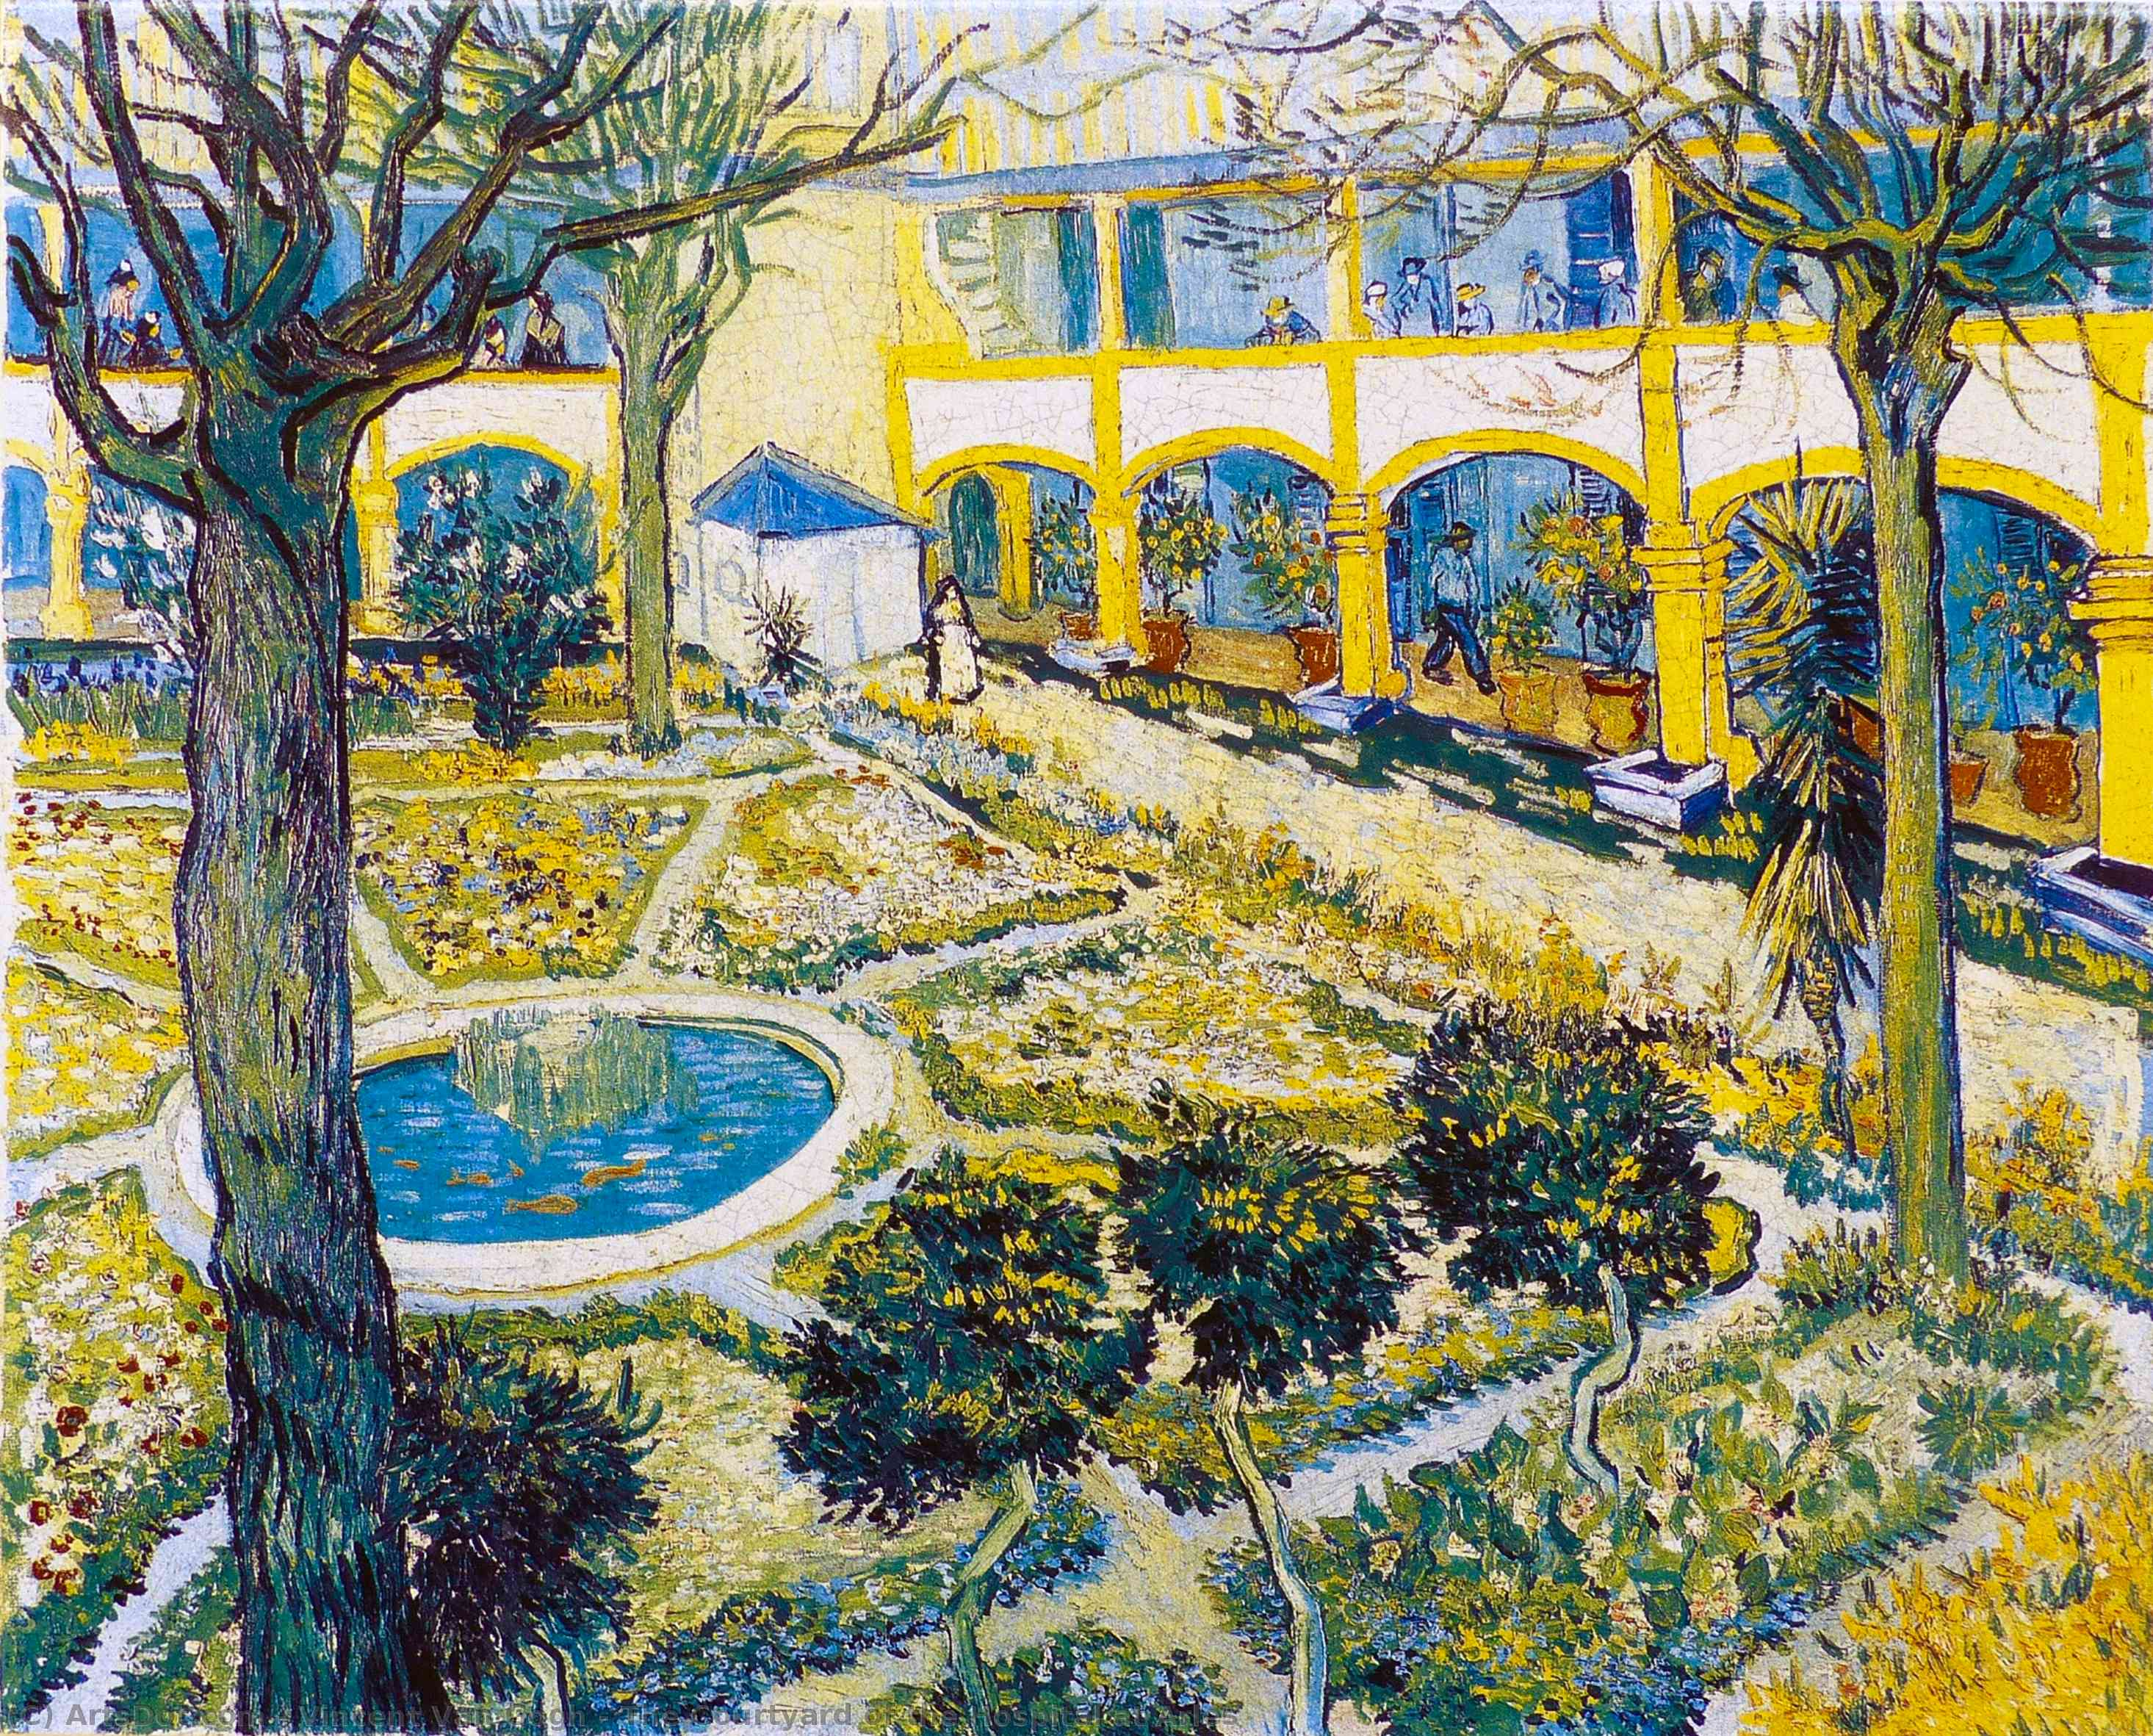 Wikioo.org - The Encyclopedia of Fine Arts - Painting, Artwork by Vincent Van Gogh - The Courtyard of the Hospital at Arles